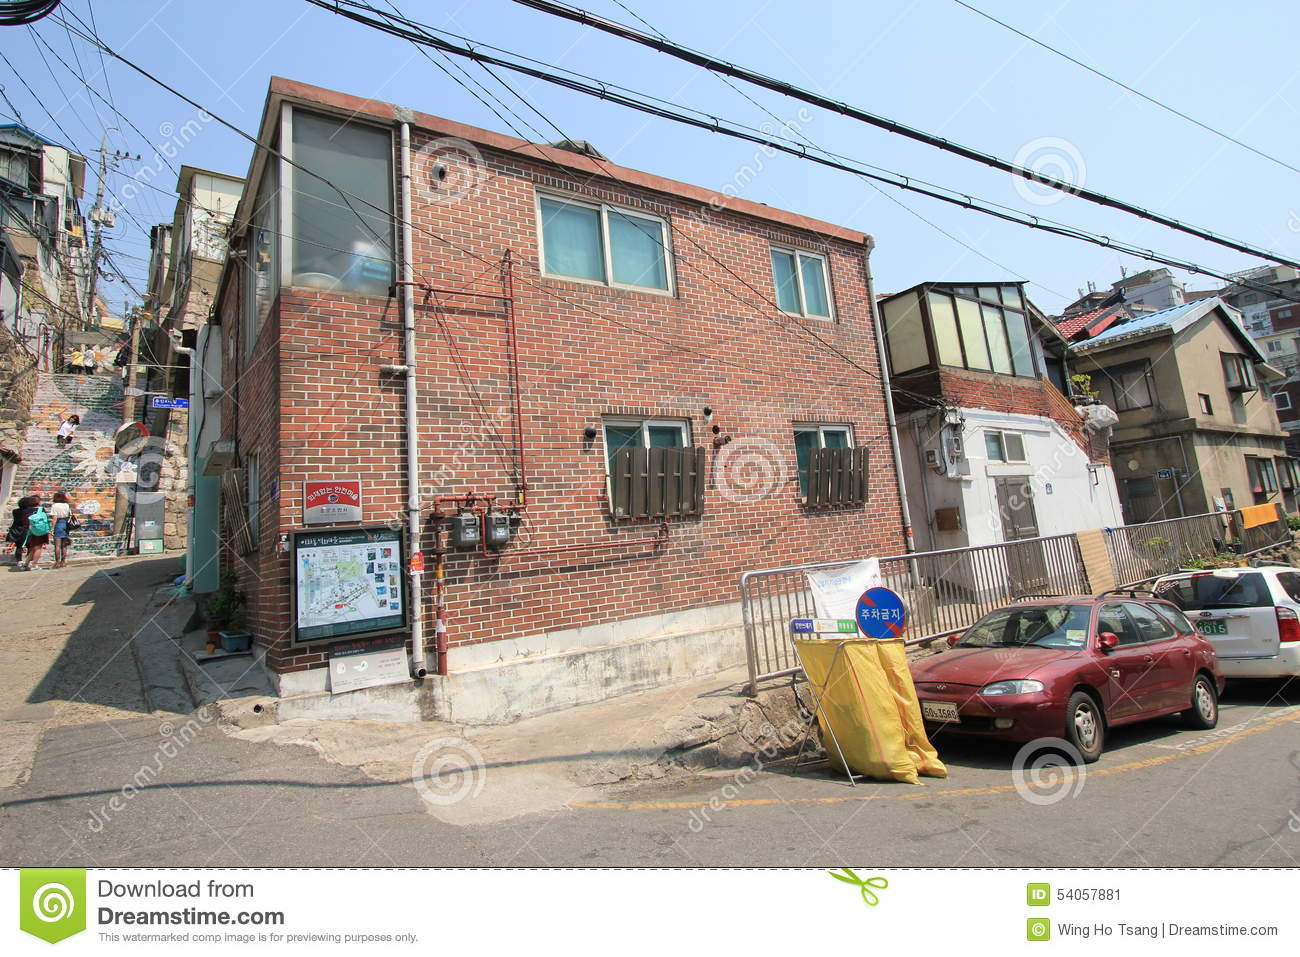 Ihwa mural village in seoul editorial photo image 54057881 for Mural village seoul